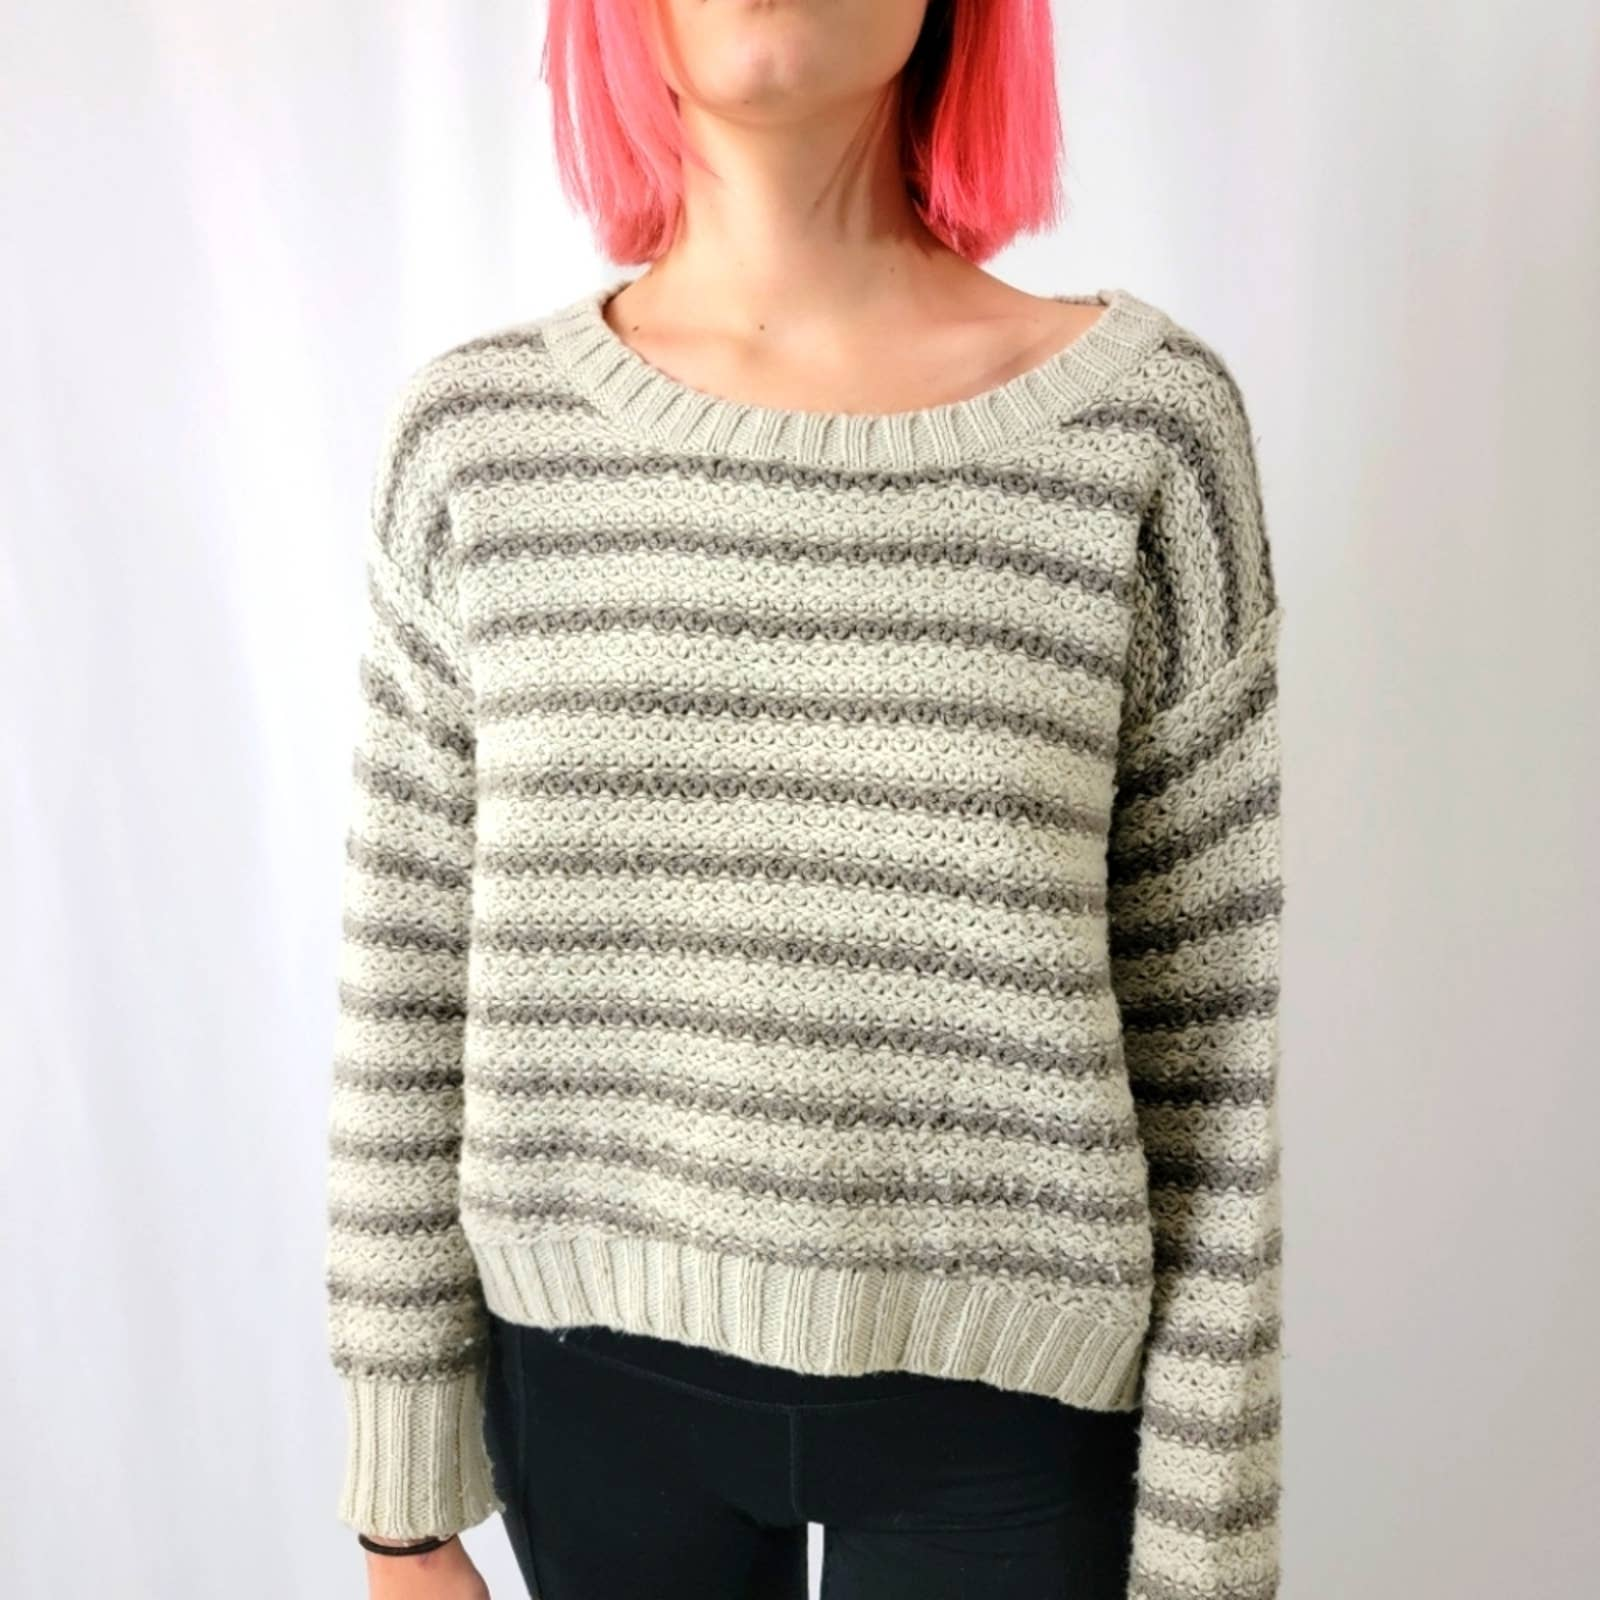 Product Image 1 - Kensie Tan Knit Striped Sweater  Round